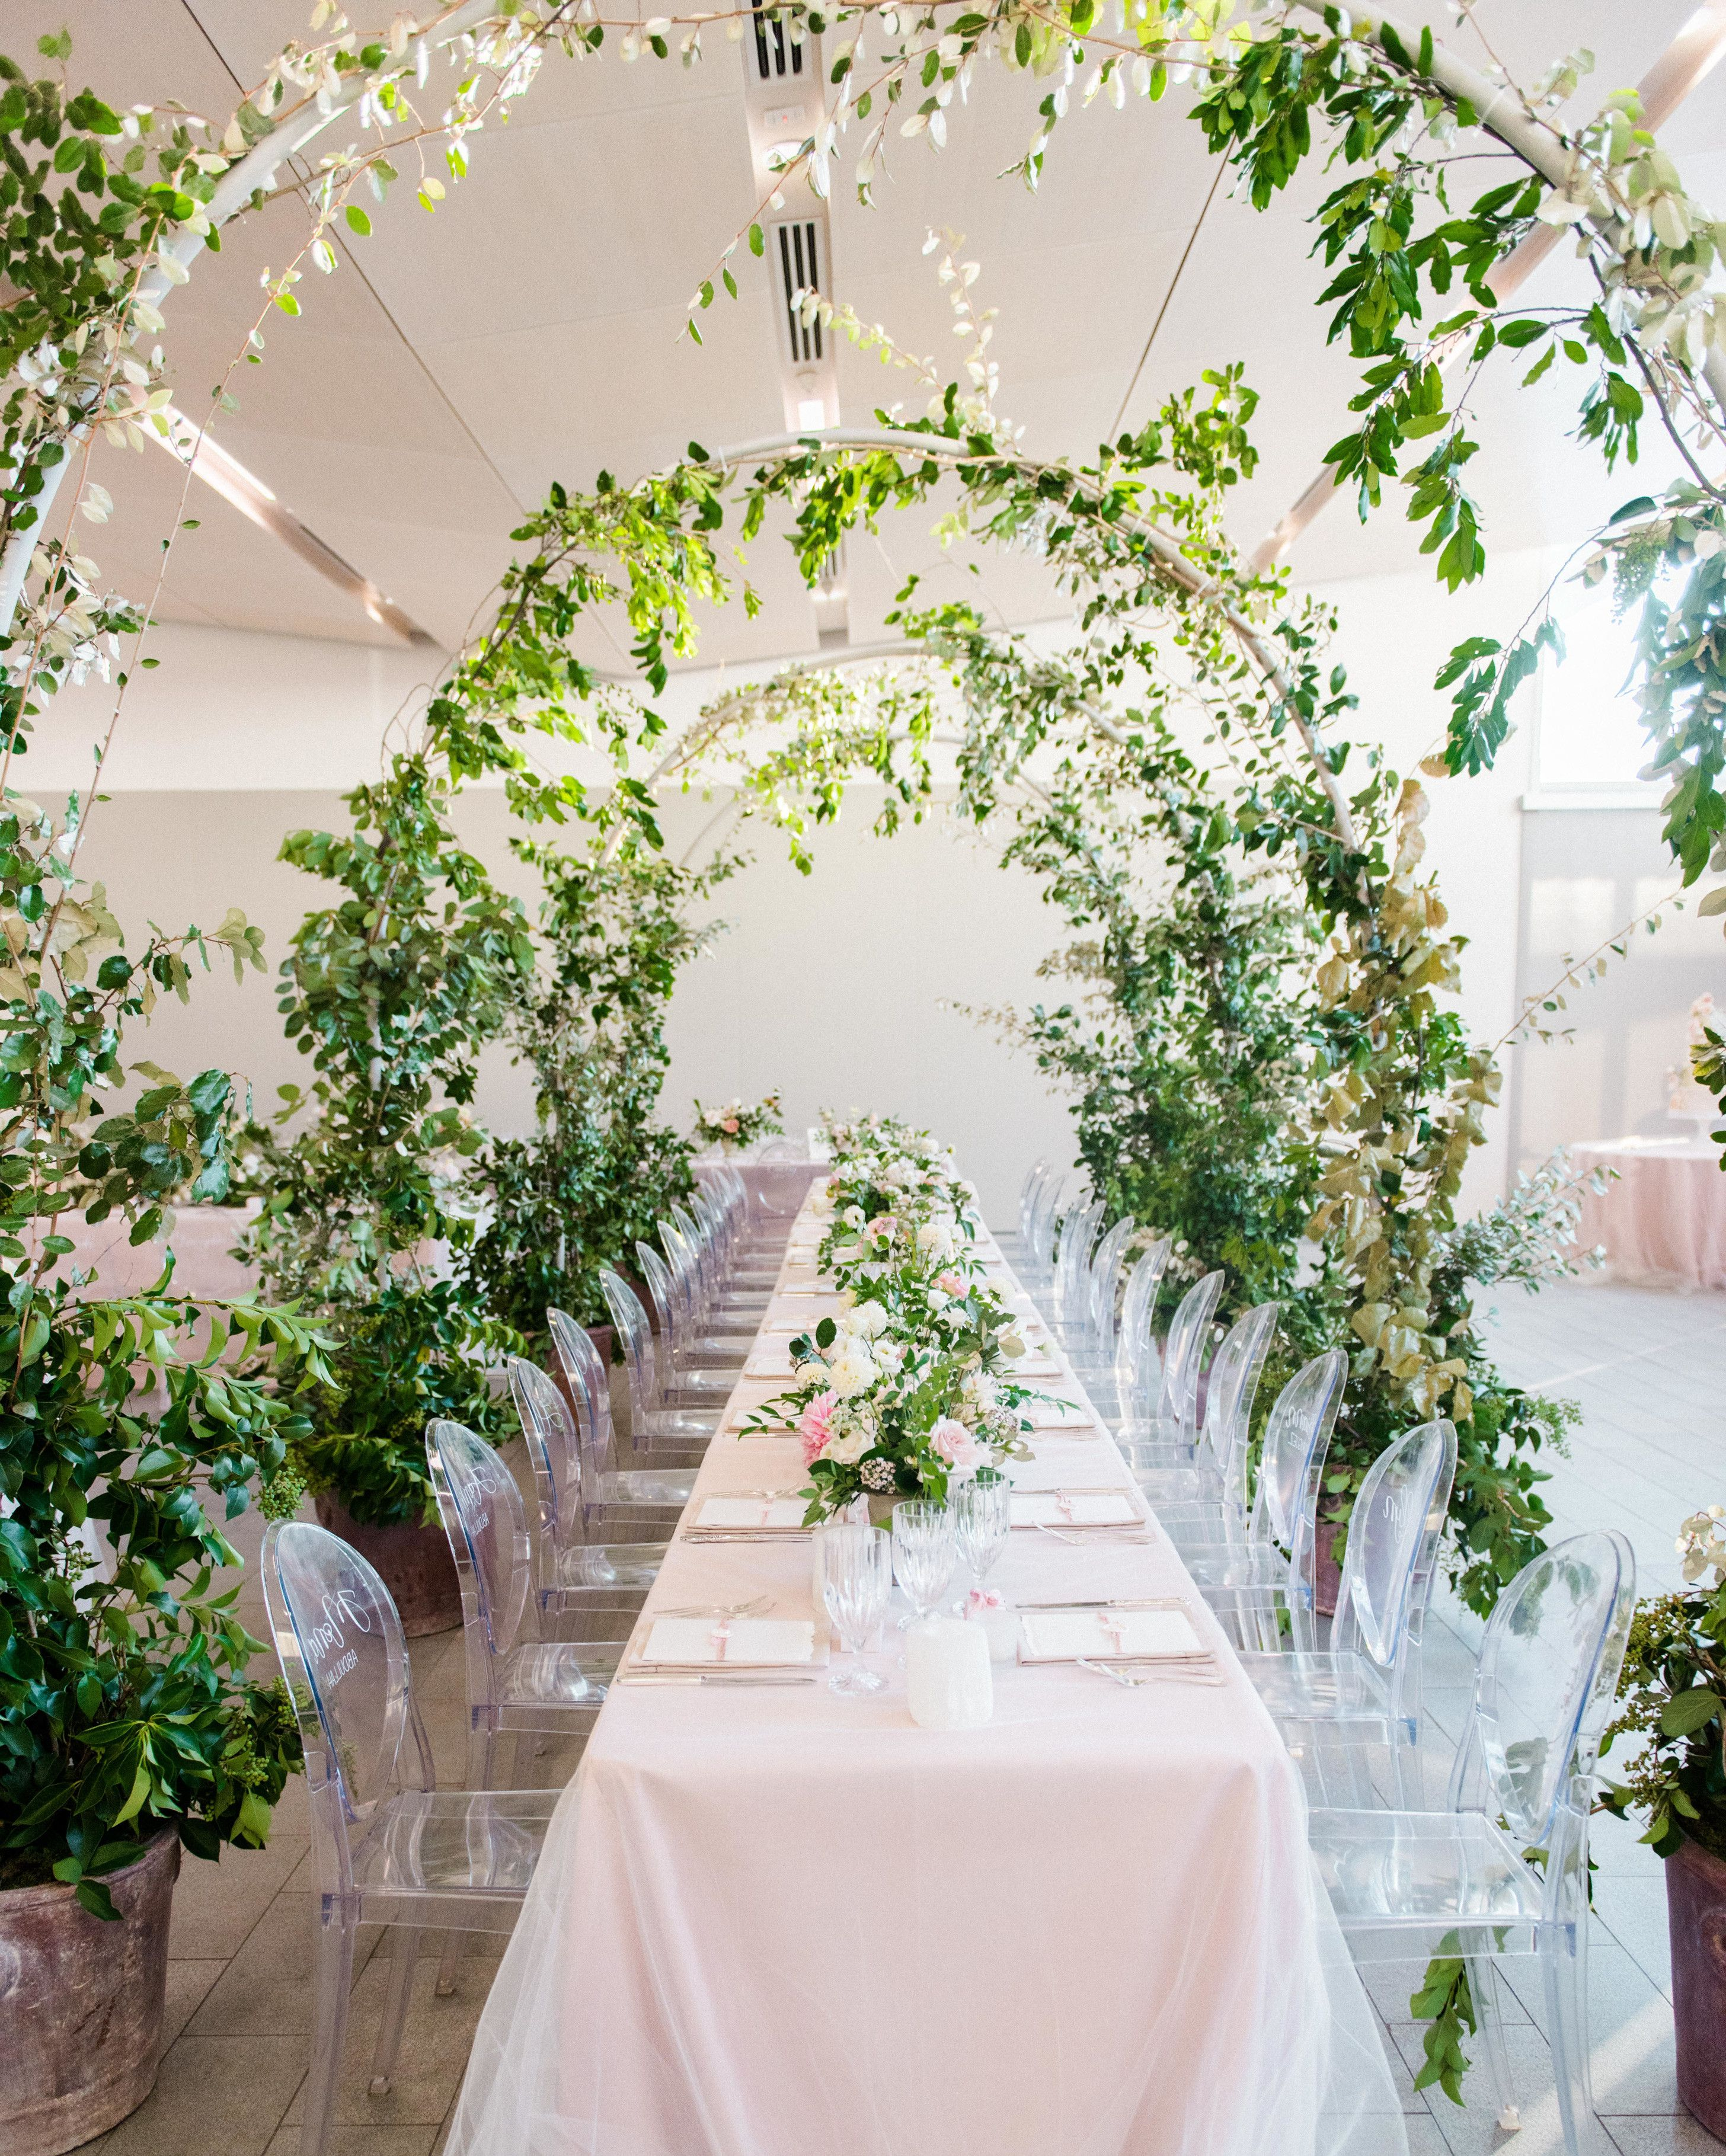 Indoor Wedding Reception Ideas: The Reception Took Place In A Private Indoor Area At